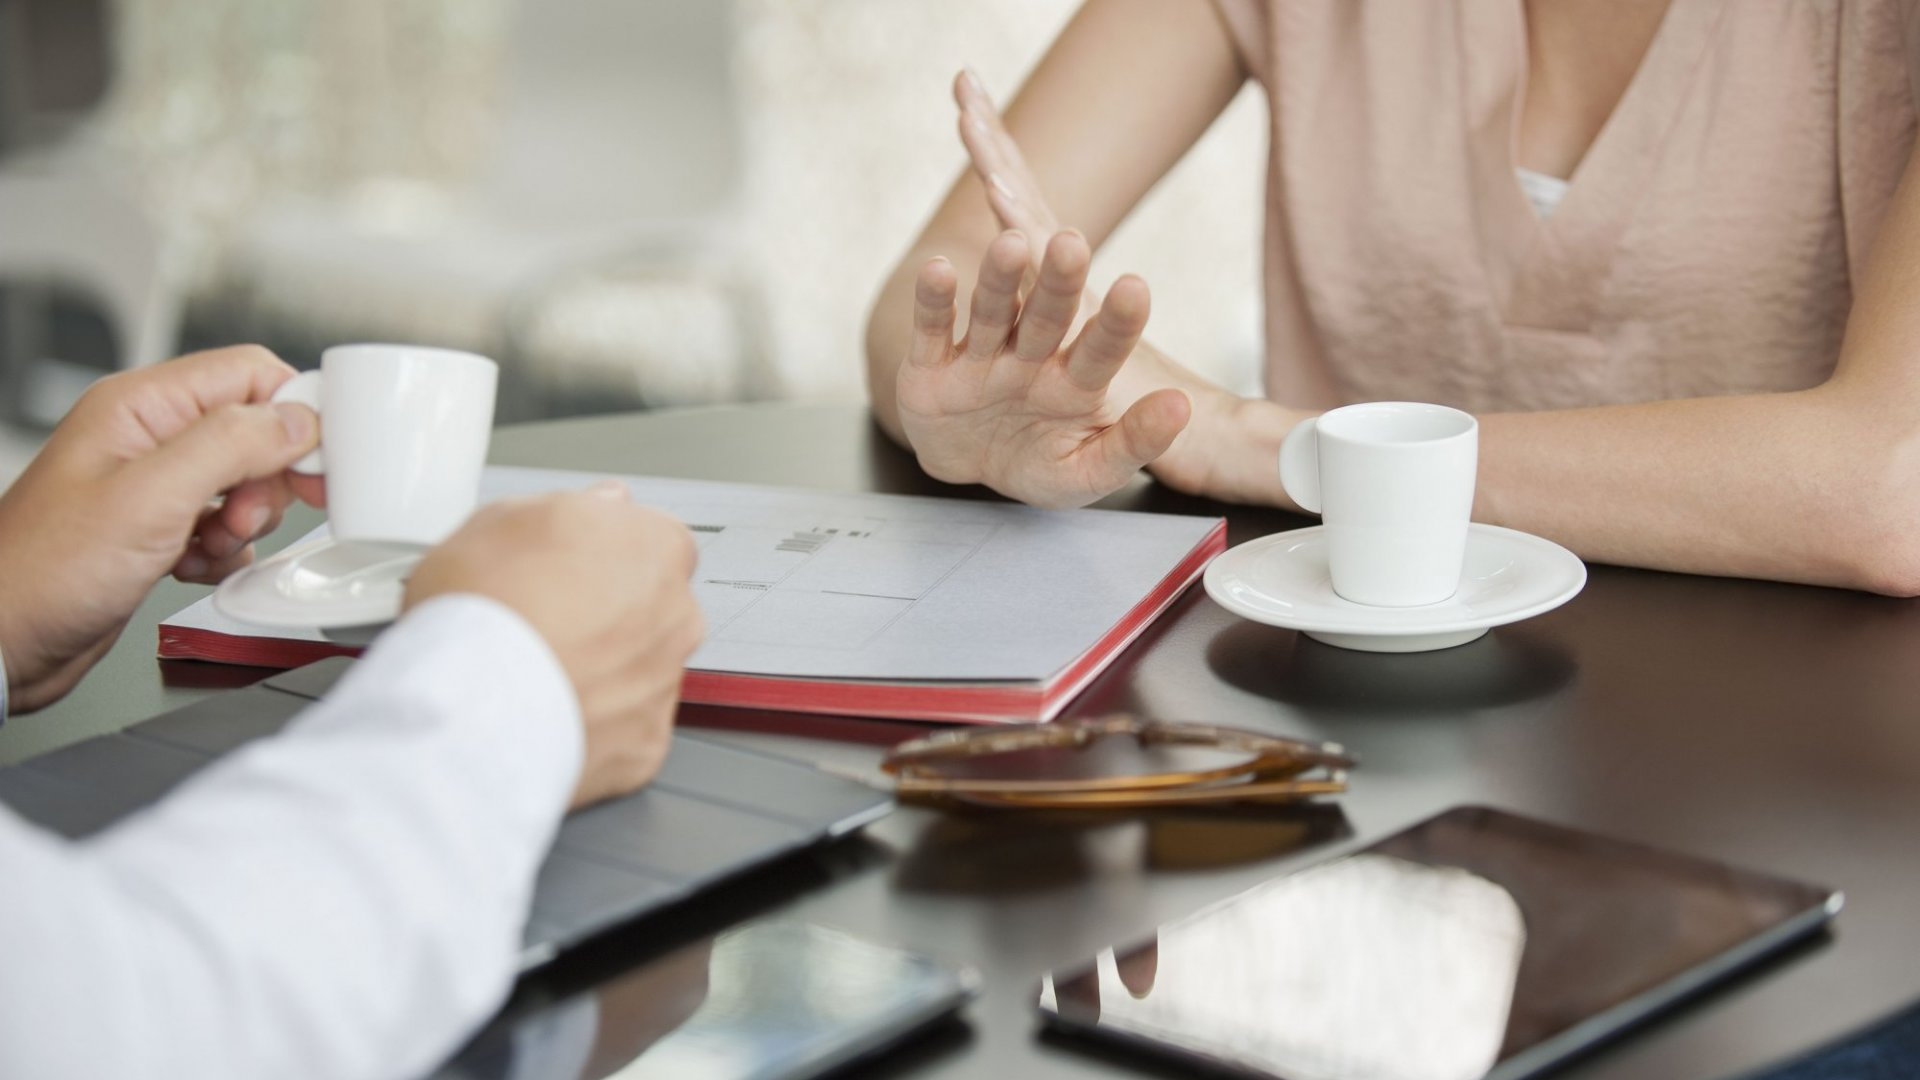 3 Things Leaders Should Never Do After a Heated Argument